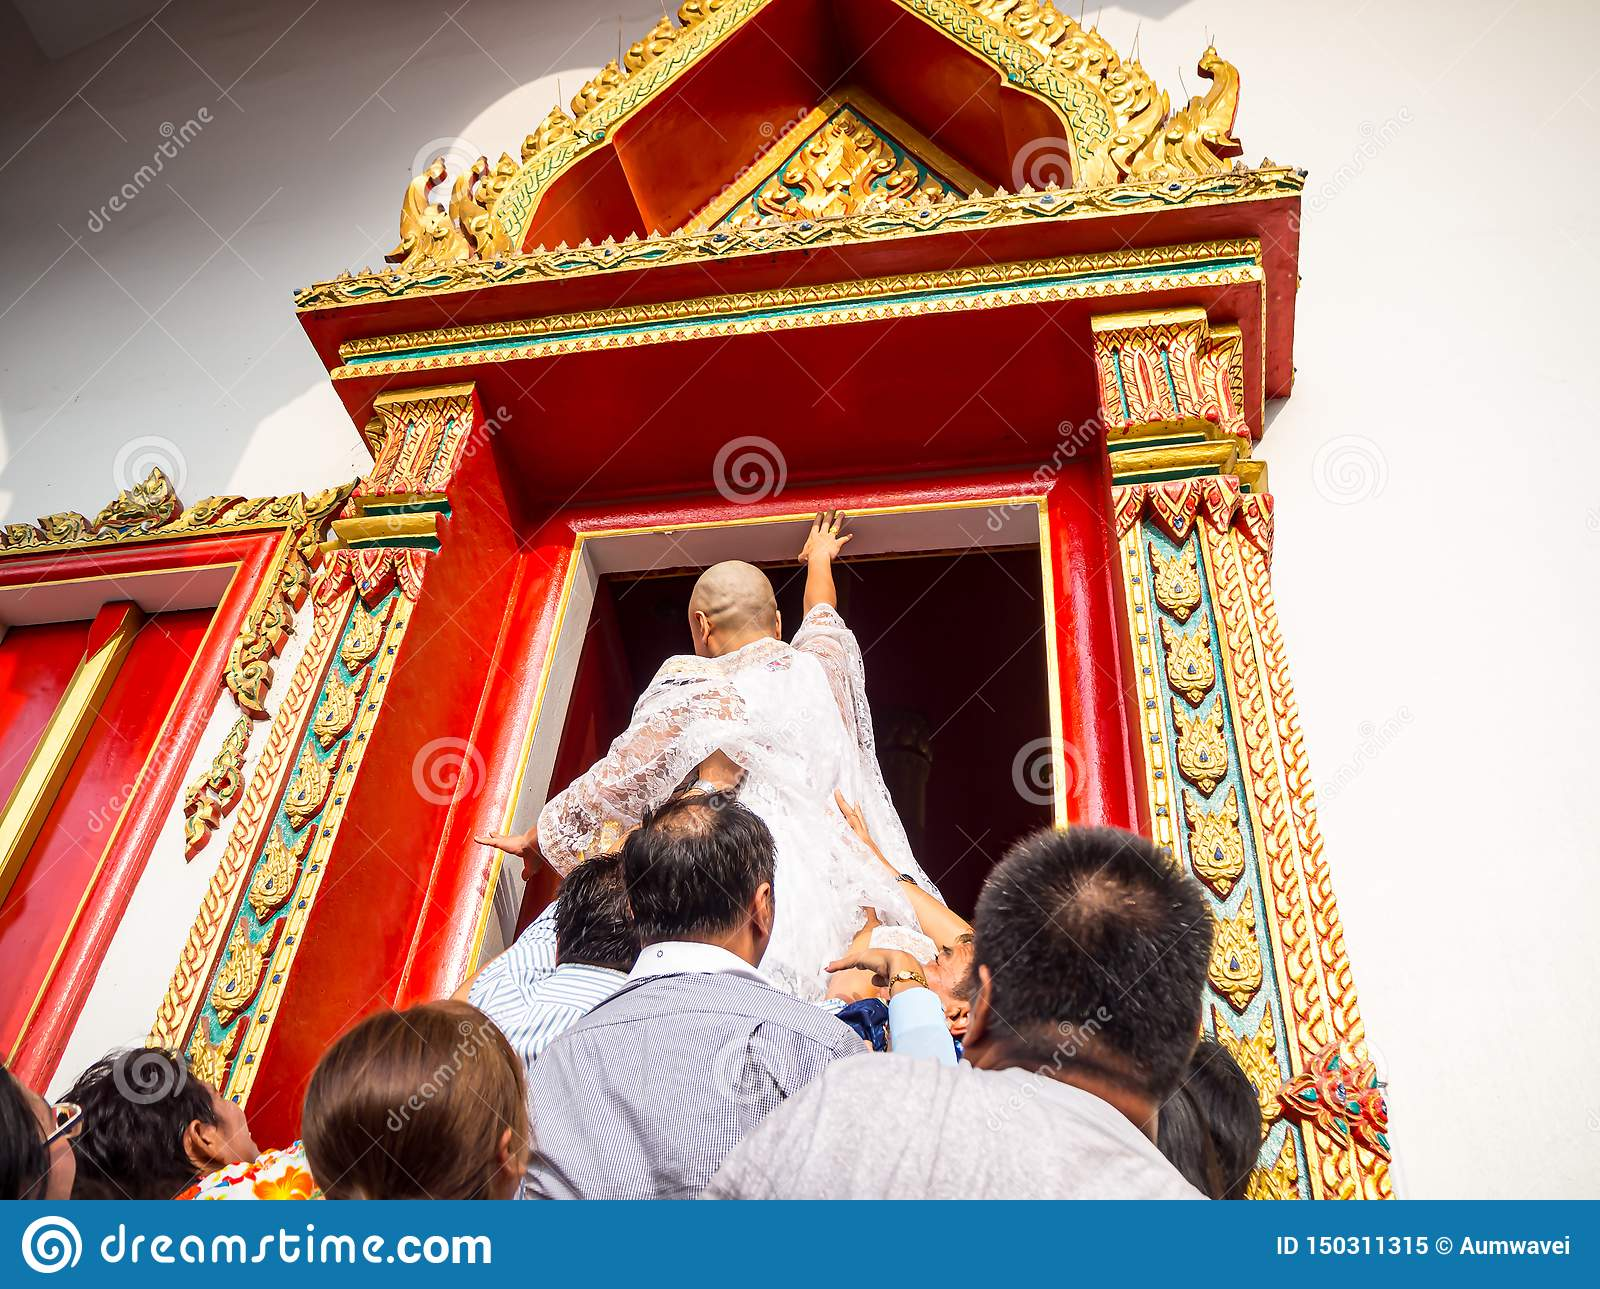 The ceremony of ordinations to touch the edge of the church before the ceremony to be valid